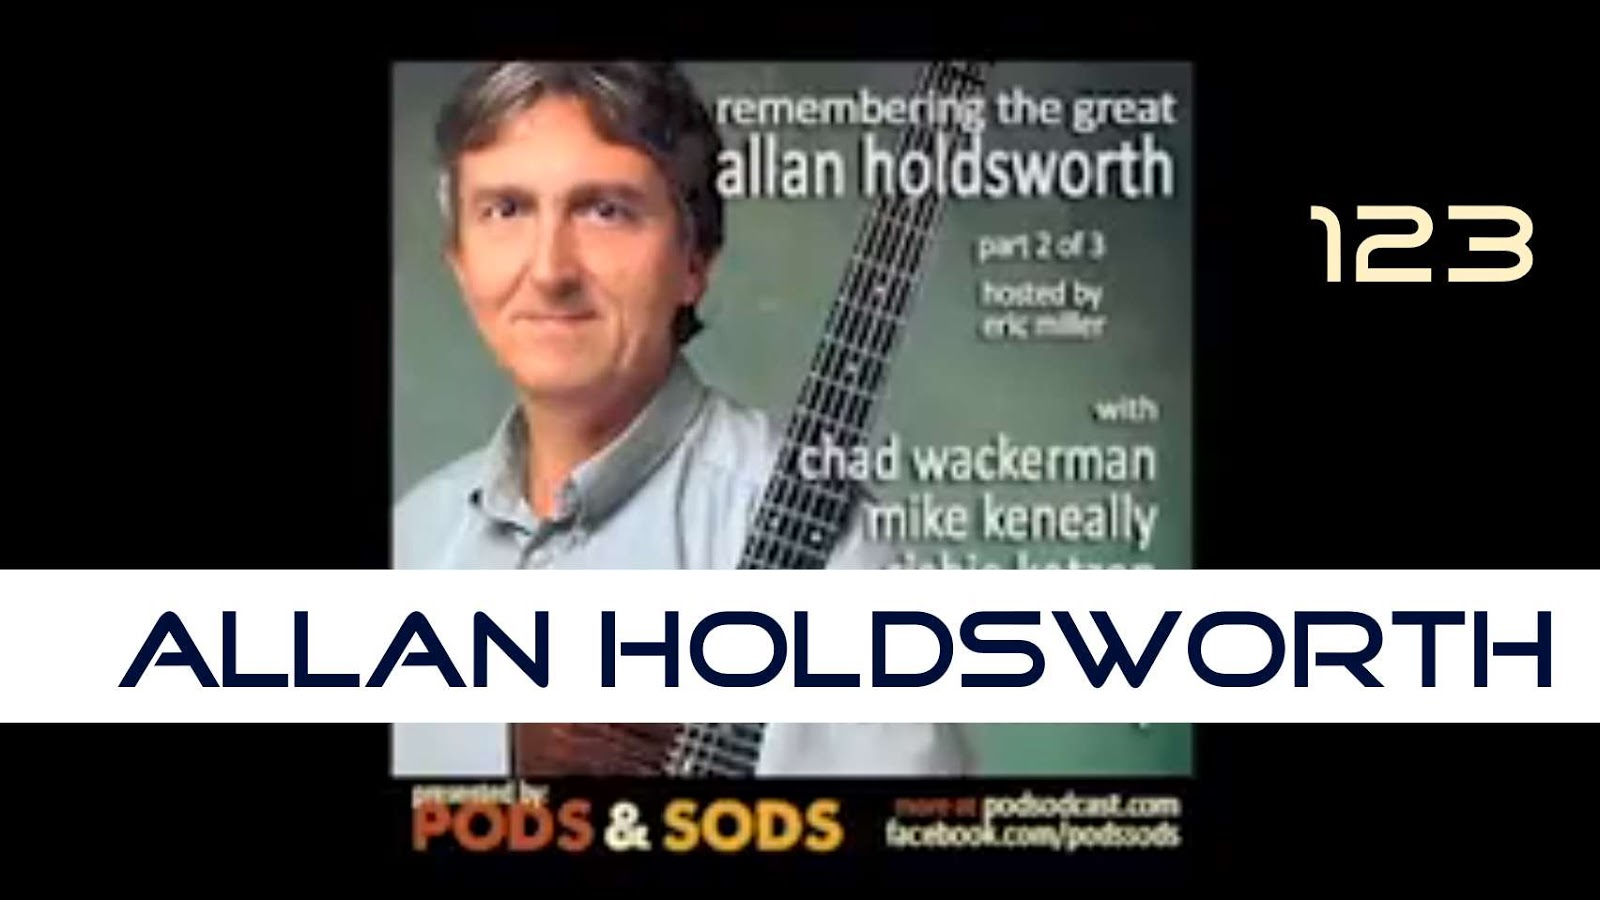 Allan Holdsworth Allan Holdsworth Remembering Allan Holdsworth From Pods